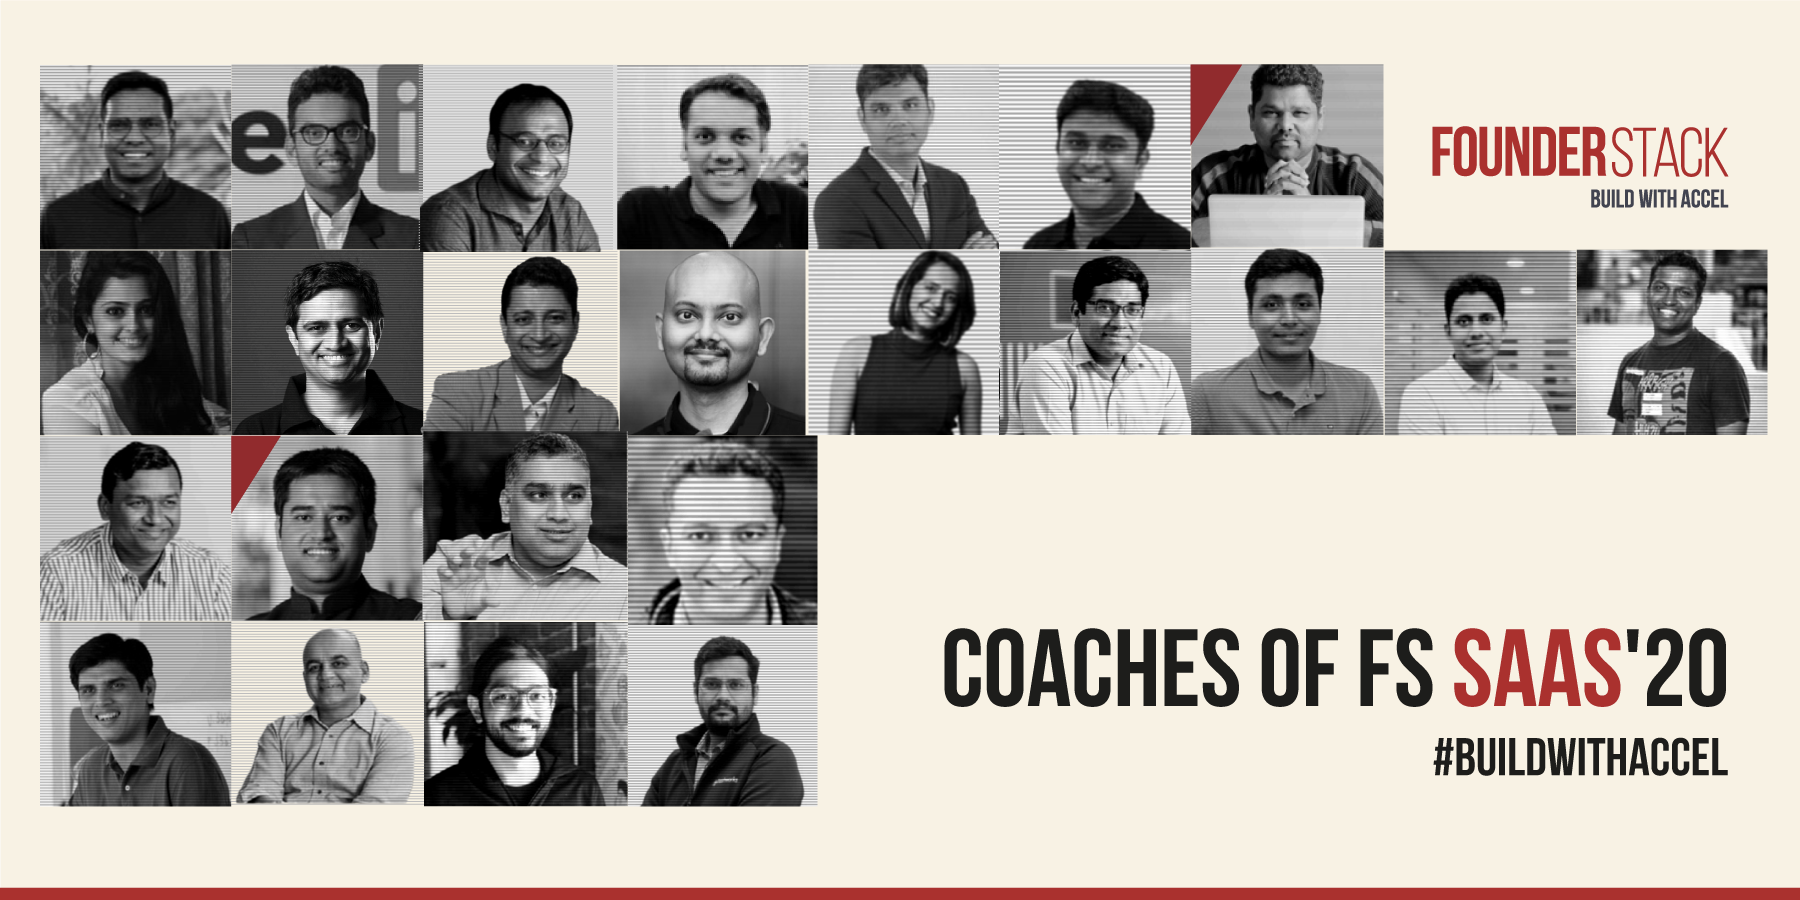 Founder Stack SaaS '20 Cohort by Accel